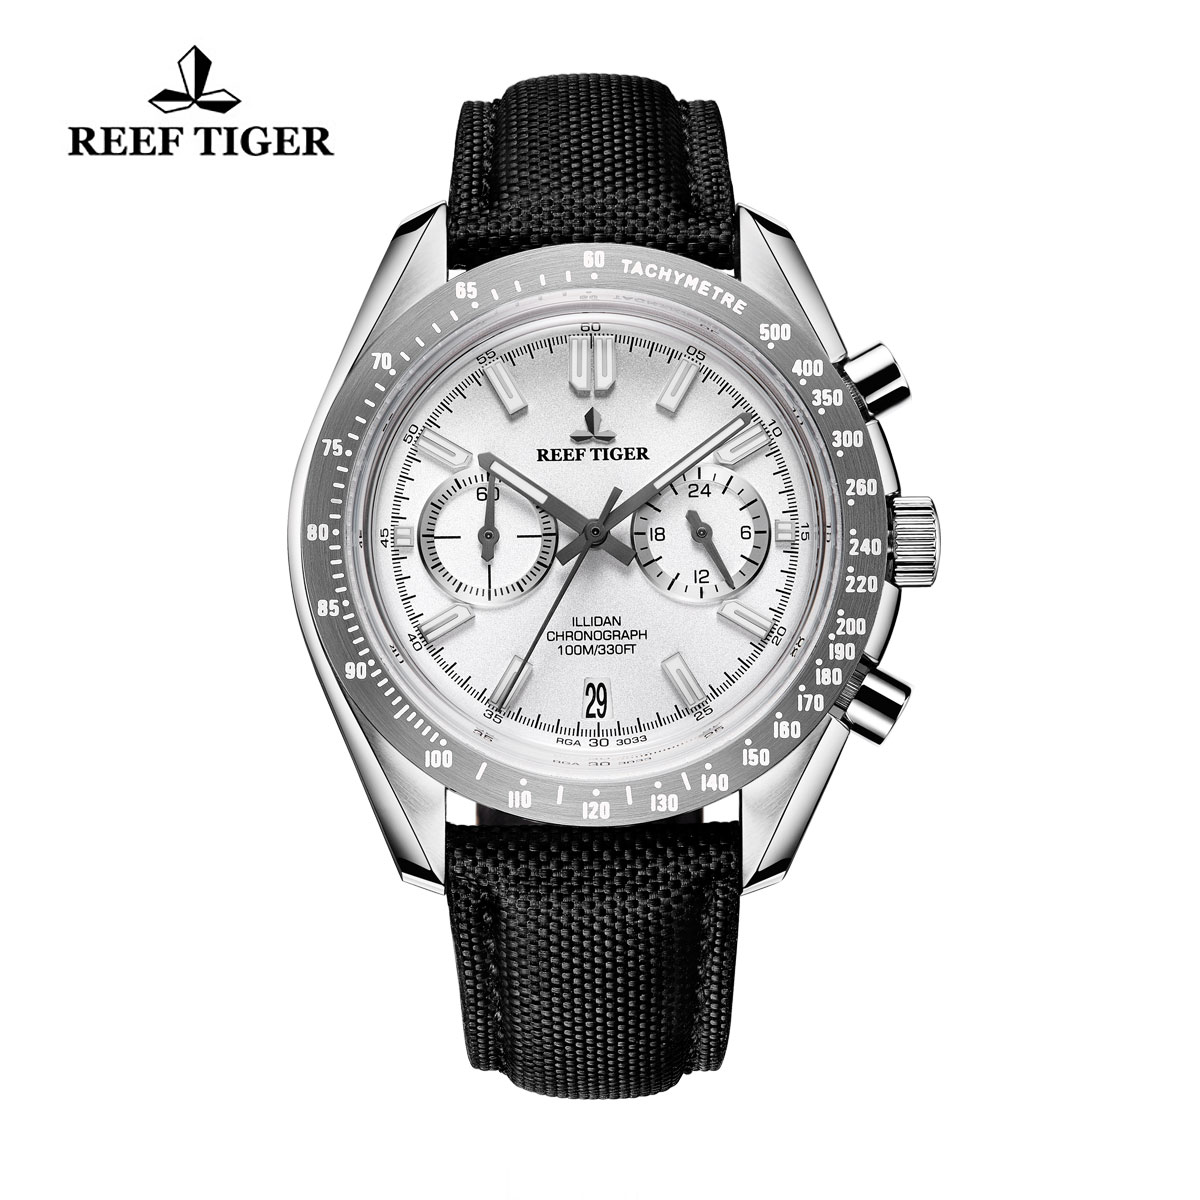 Reef Tiger Illidan Quartz Watches Chronograph Steel Case White Dial Leather Strap Watches RGA3033-YWB